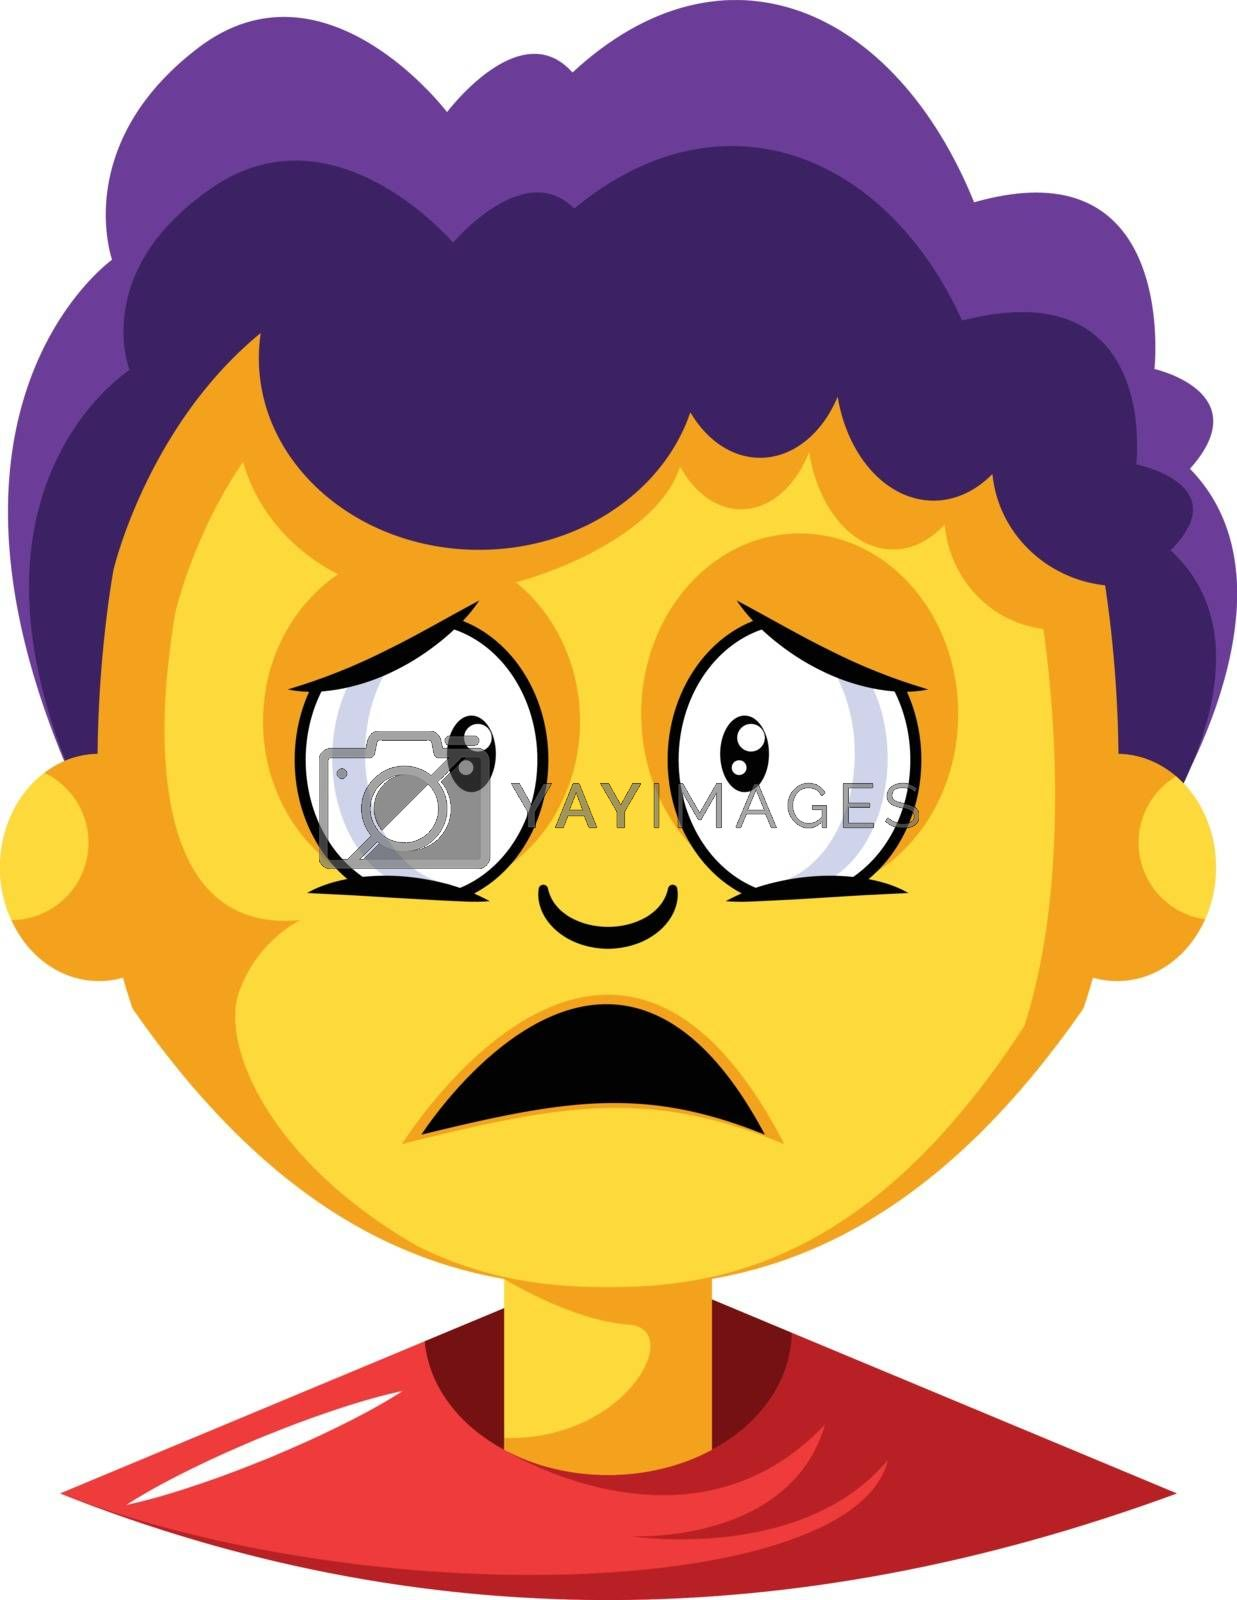 Royalty free image of Young boy with purple hair is depressed illustration vector on w by Morphart